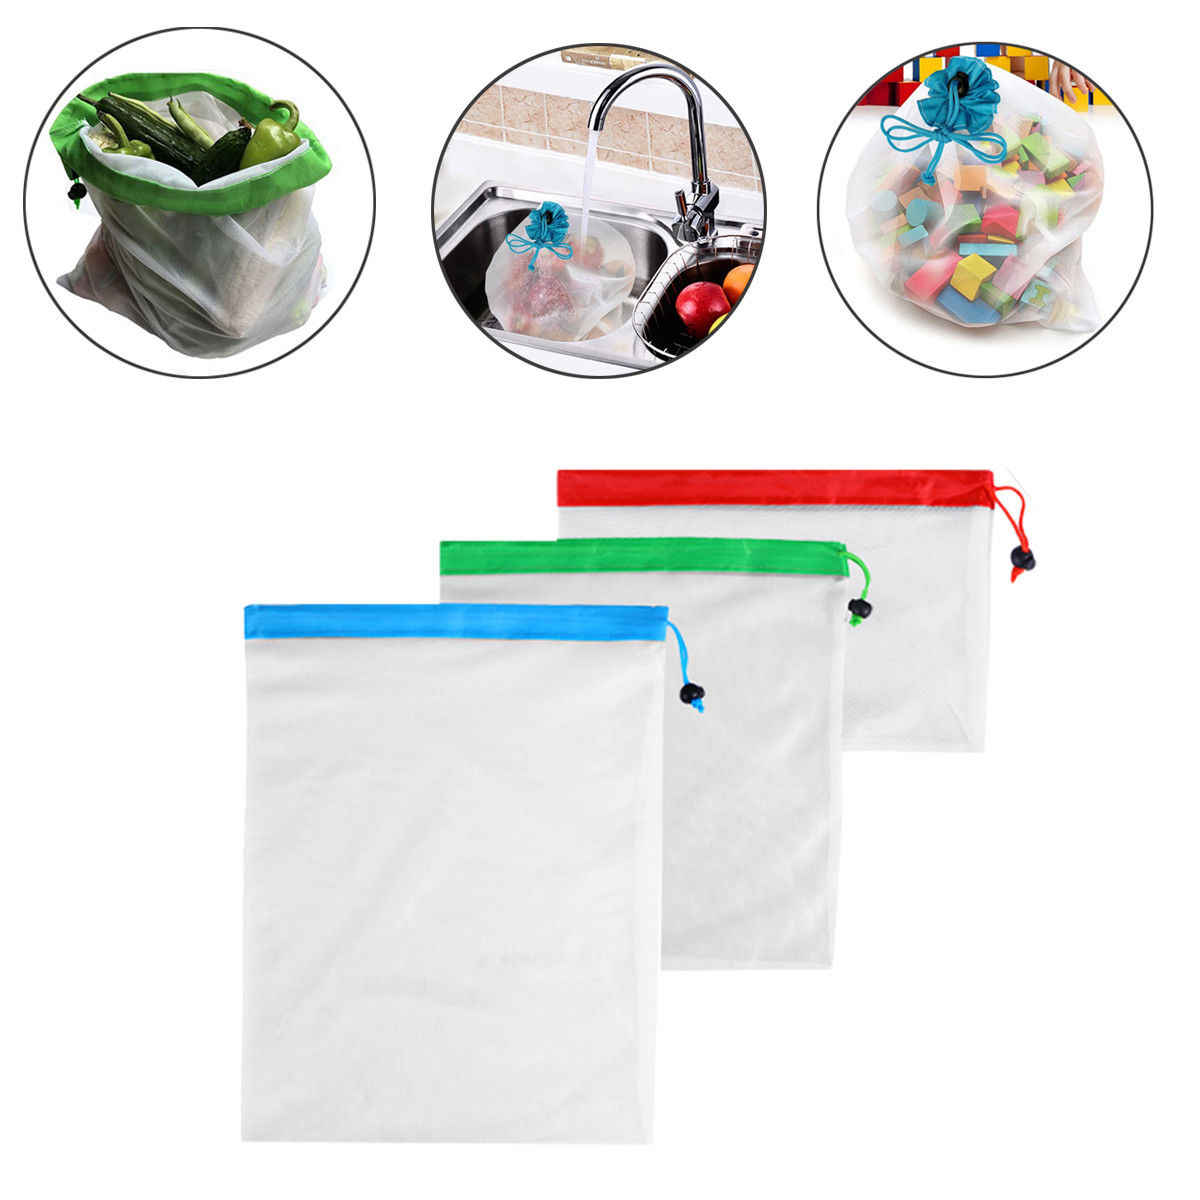 2019 New Reusable Mesh Bag for Grocery Shopping Fruit Vegetable Toys Storage Bags Clear Thicken Reclosable Poly bag 3 sizes